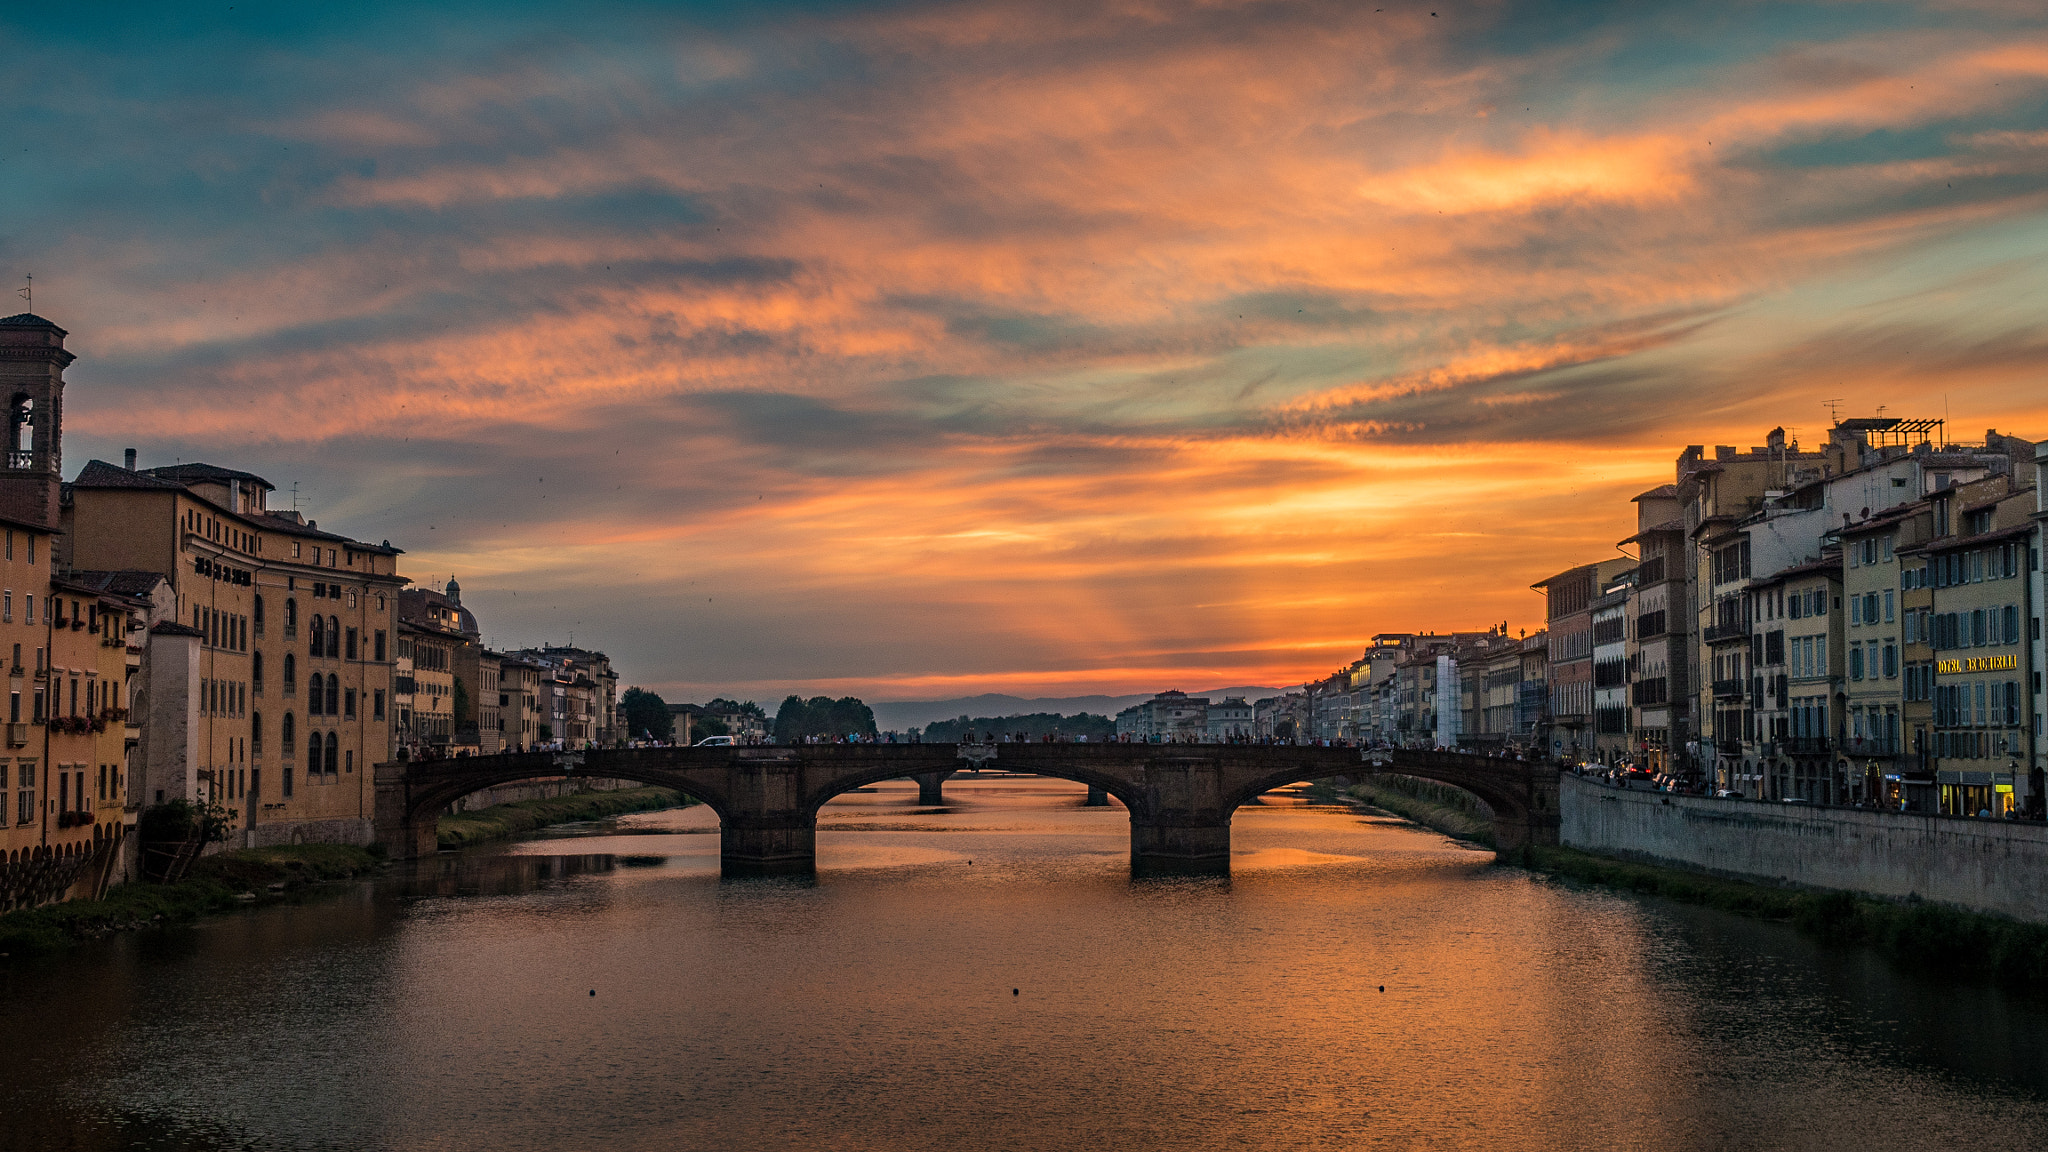 Sunset over the Arno River in Florence, Italy - photo by Peter Teoh under CC-BY-SA-3.0